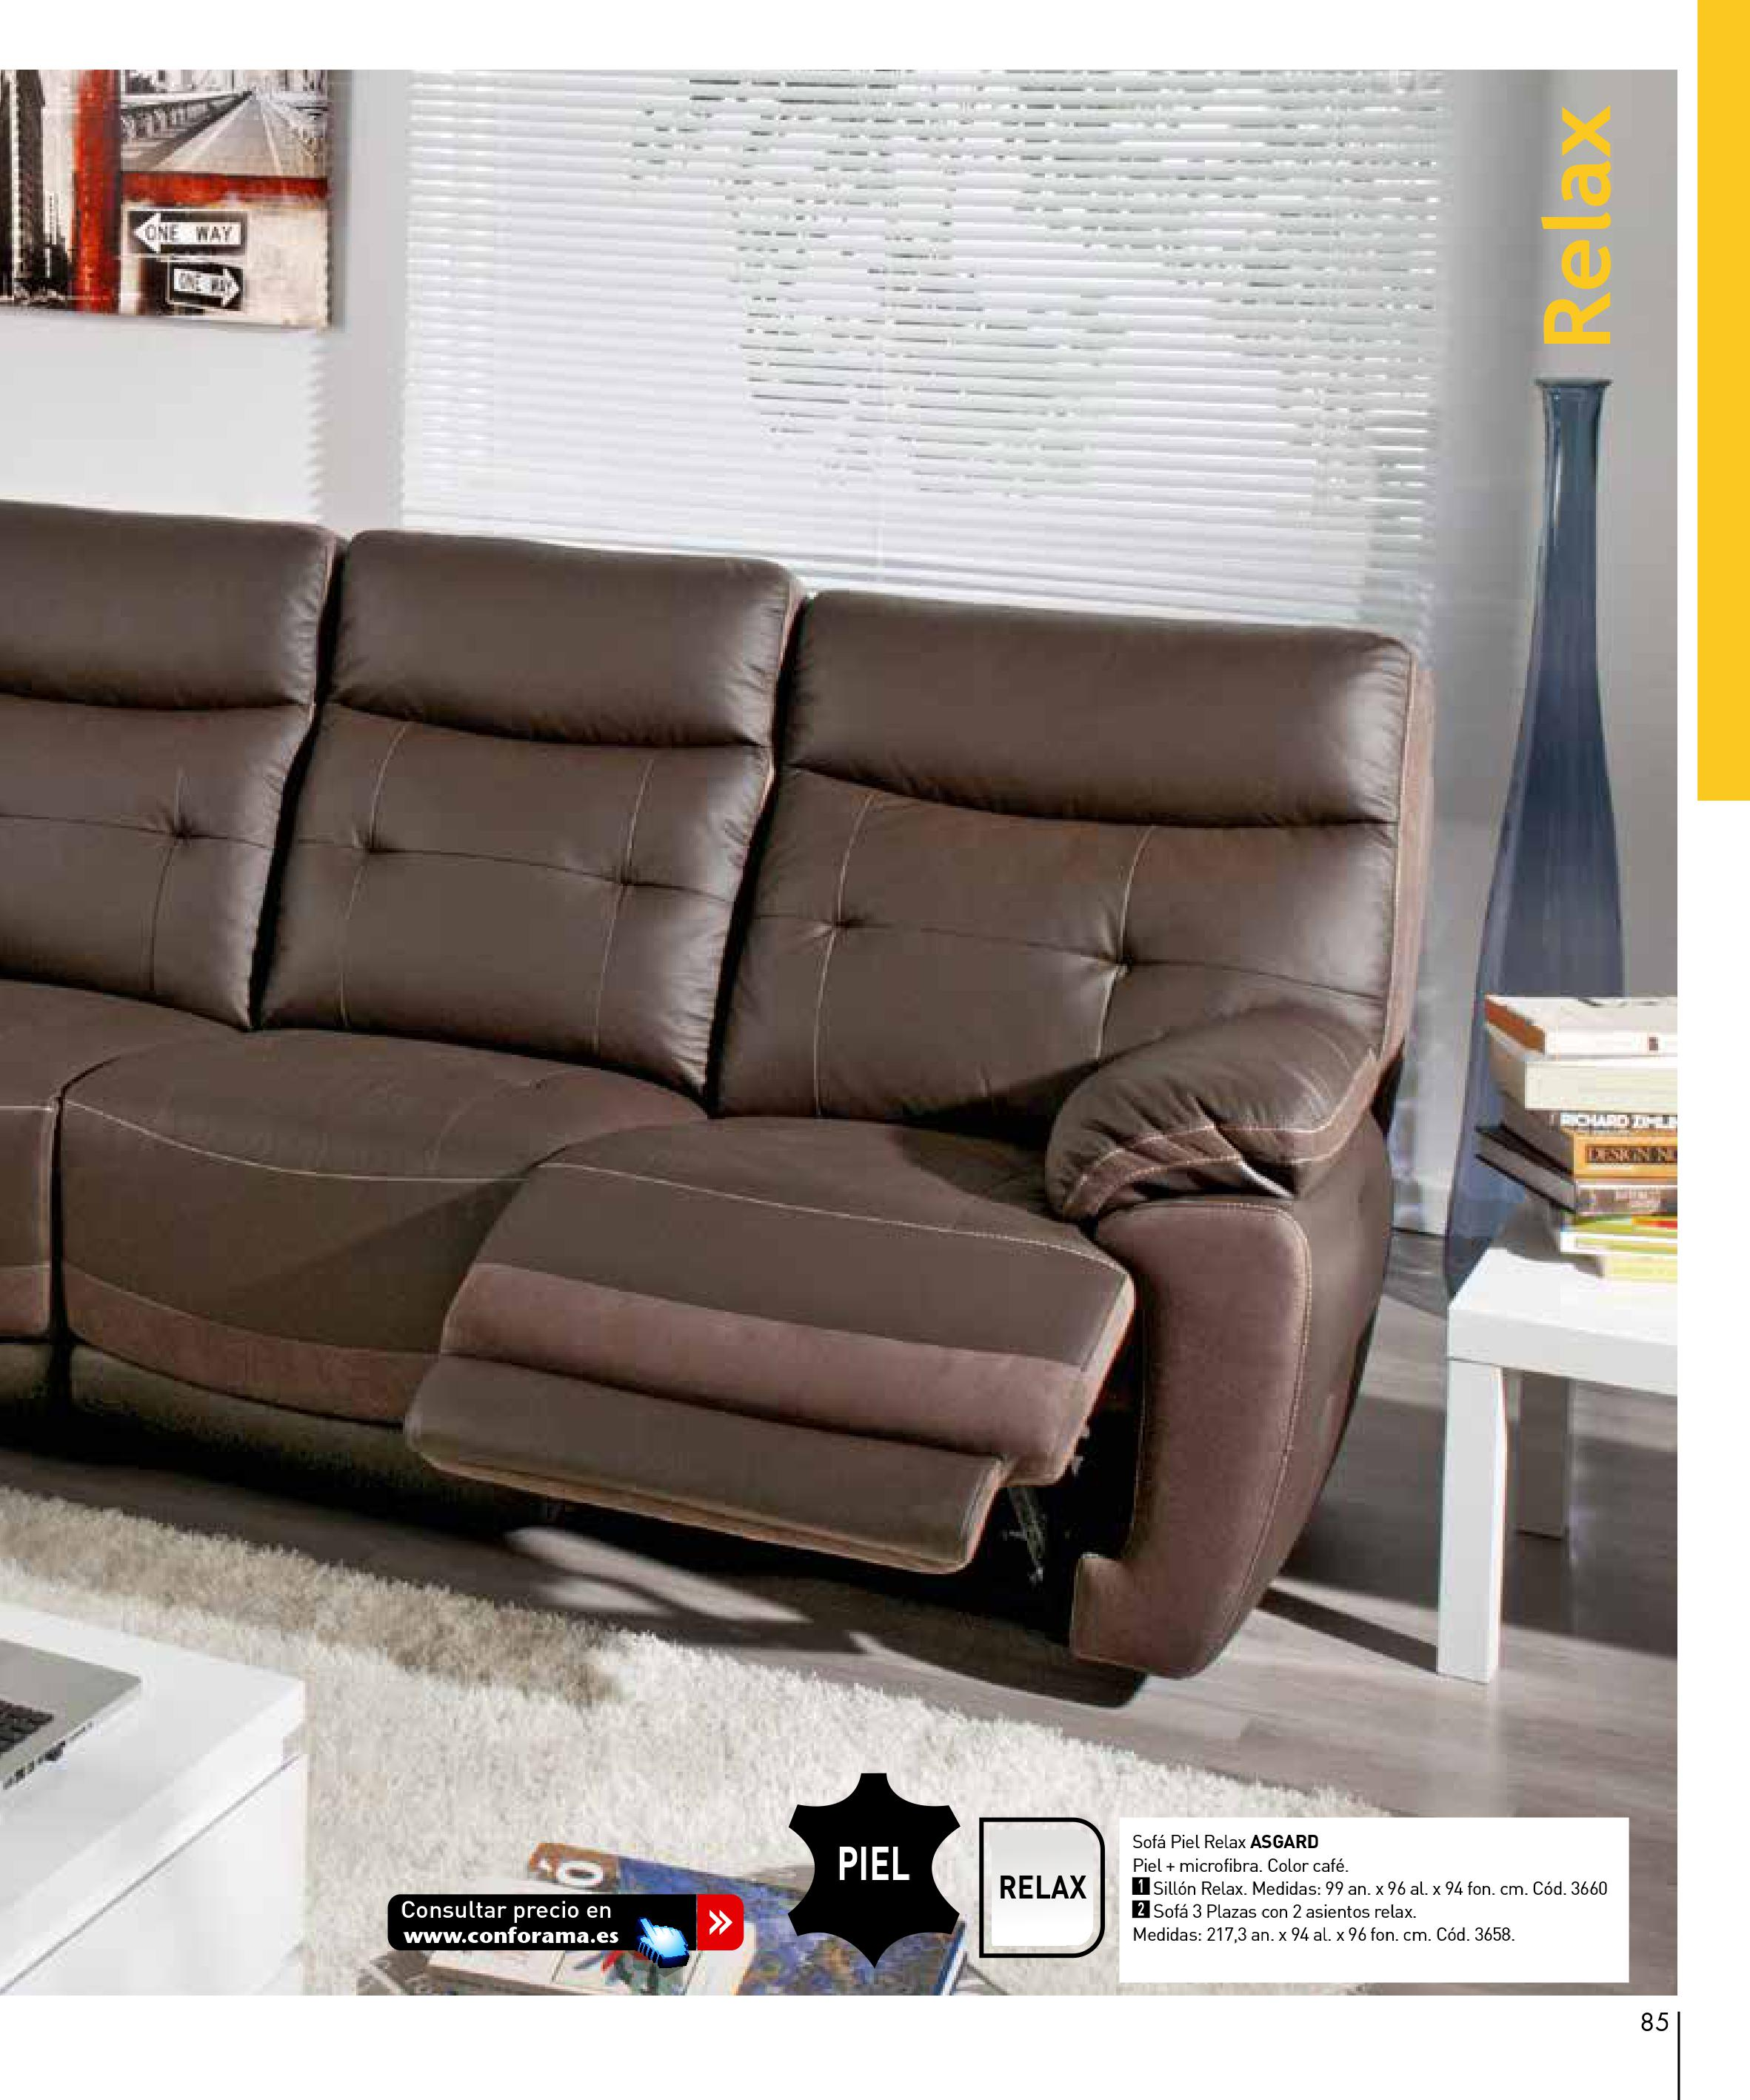 Sofas conforama 201585 for Sofas conforama catalogo